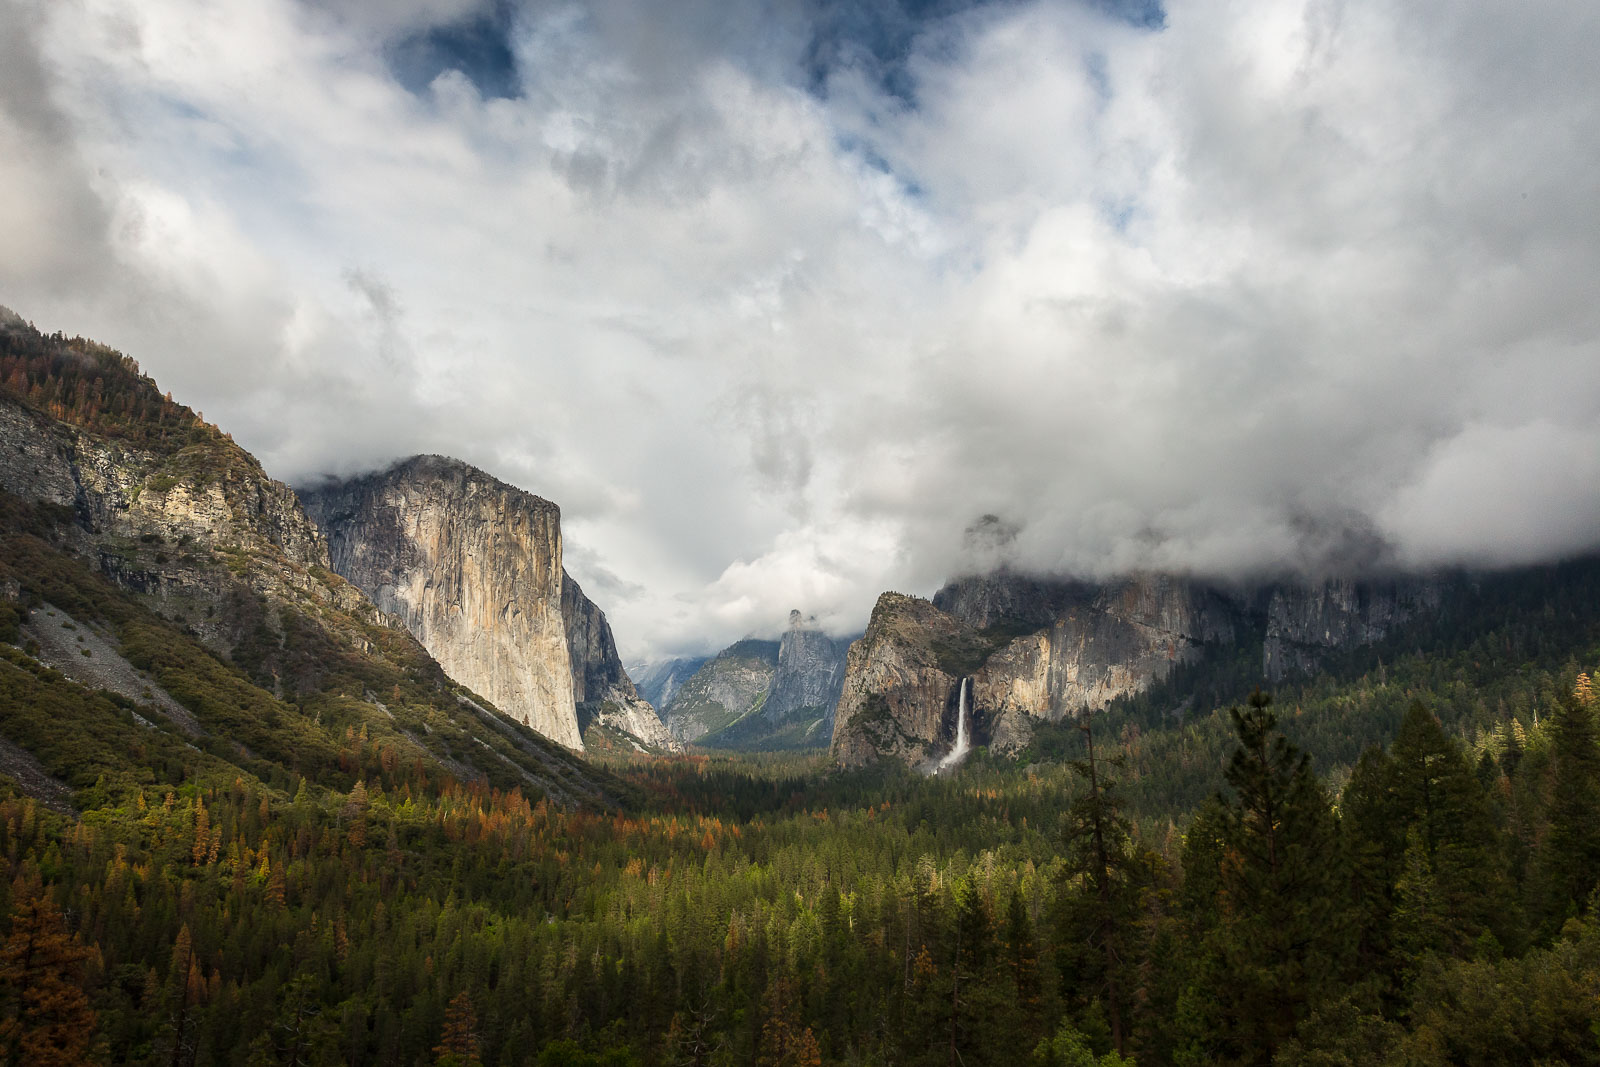 Yosemite-valley-photo-by-Gayle-Soskolne Best Top Nature Photography Pictures Now Now @capturingmomentsphotography.net